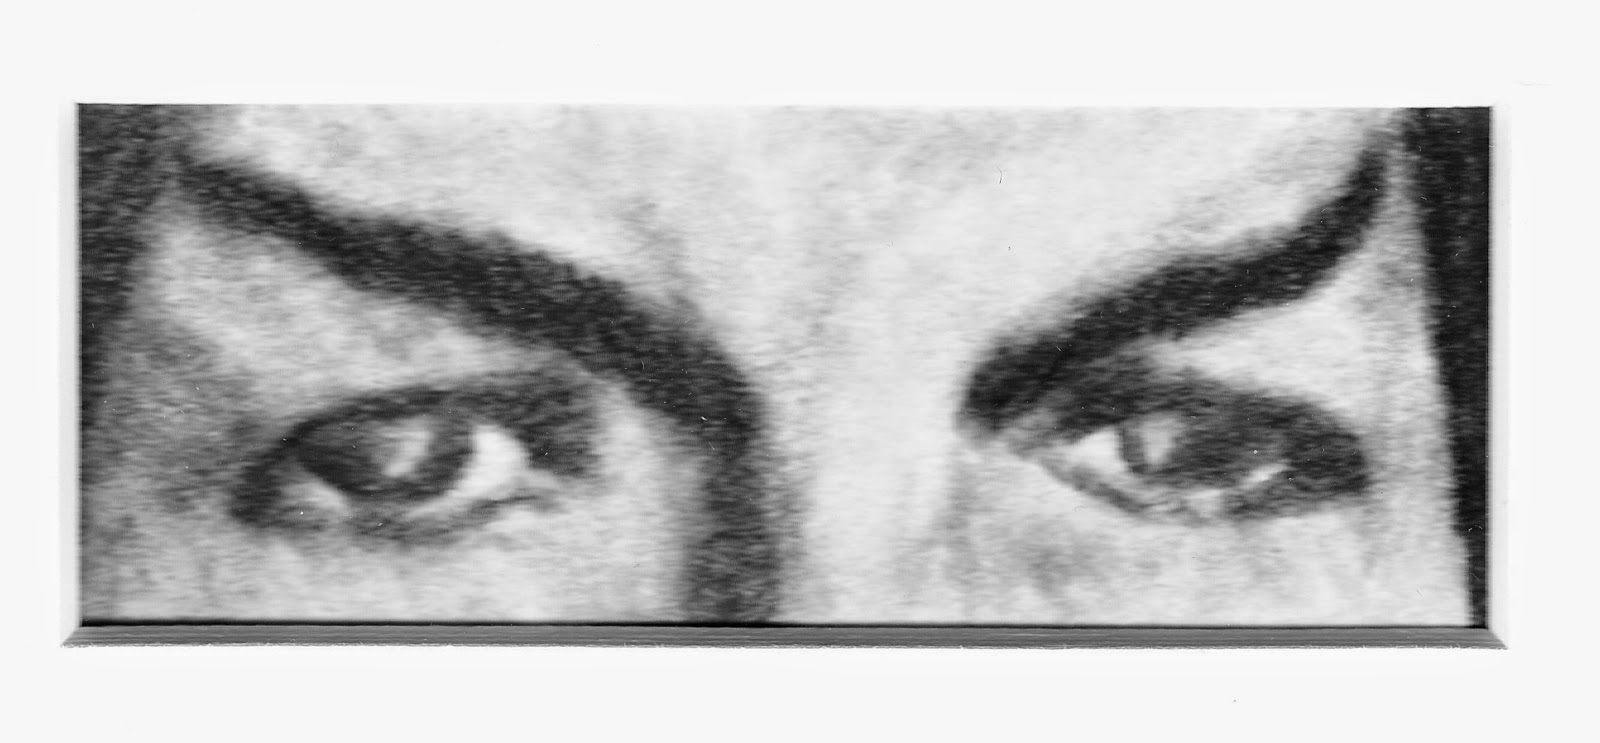 Eyes of Mister Spock by F. Lennox Campello